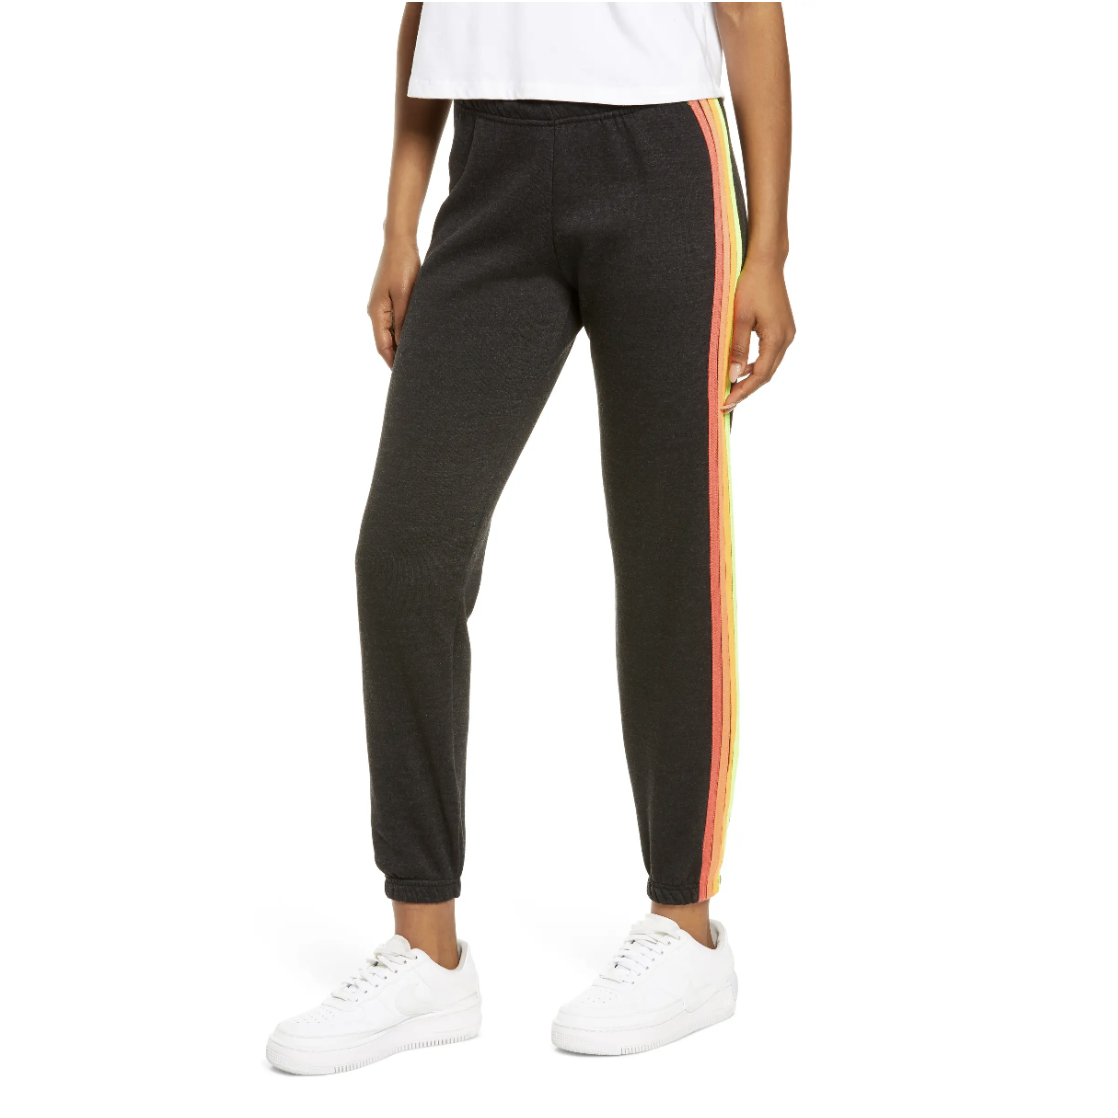 sweatpants with a stripe on the side